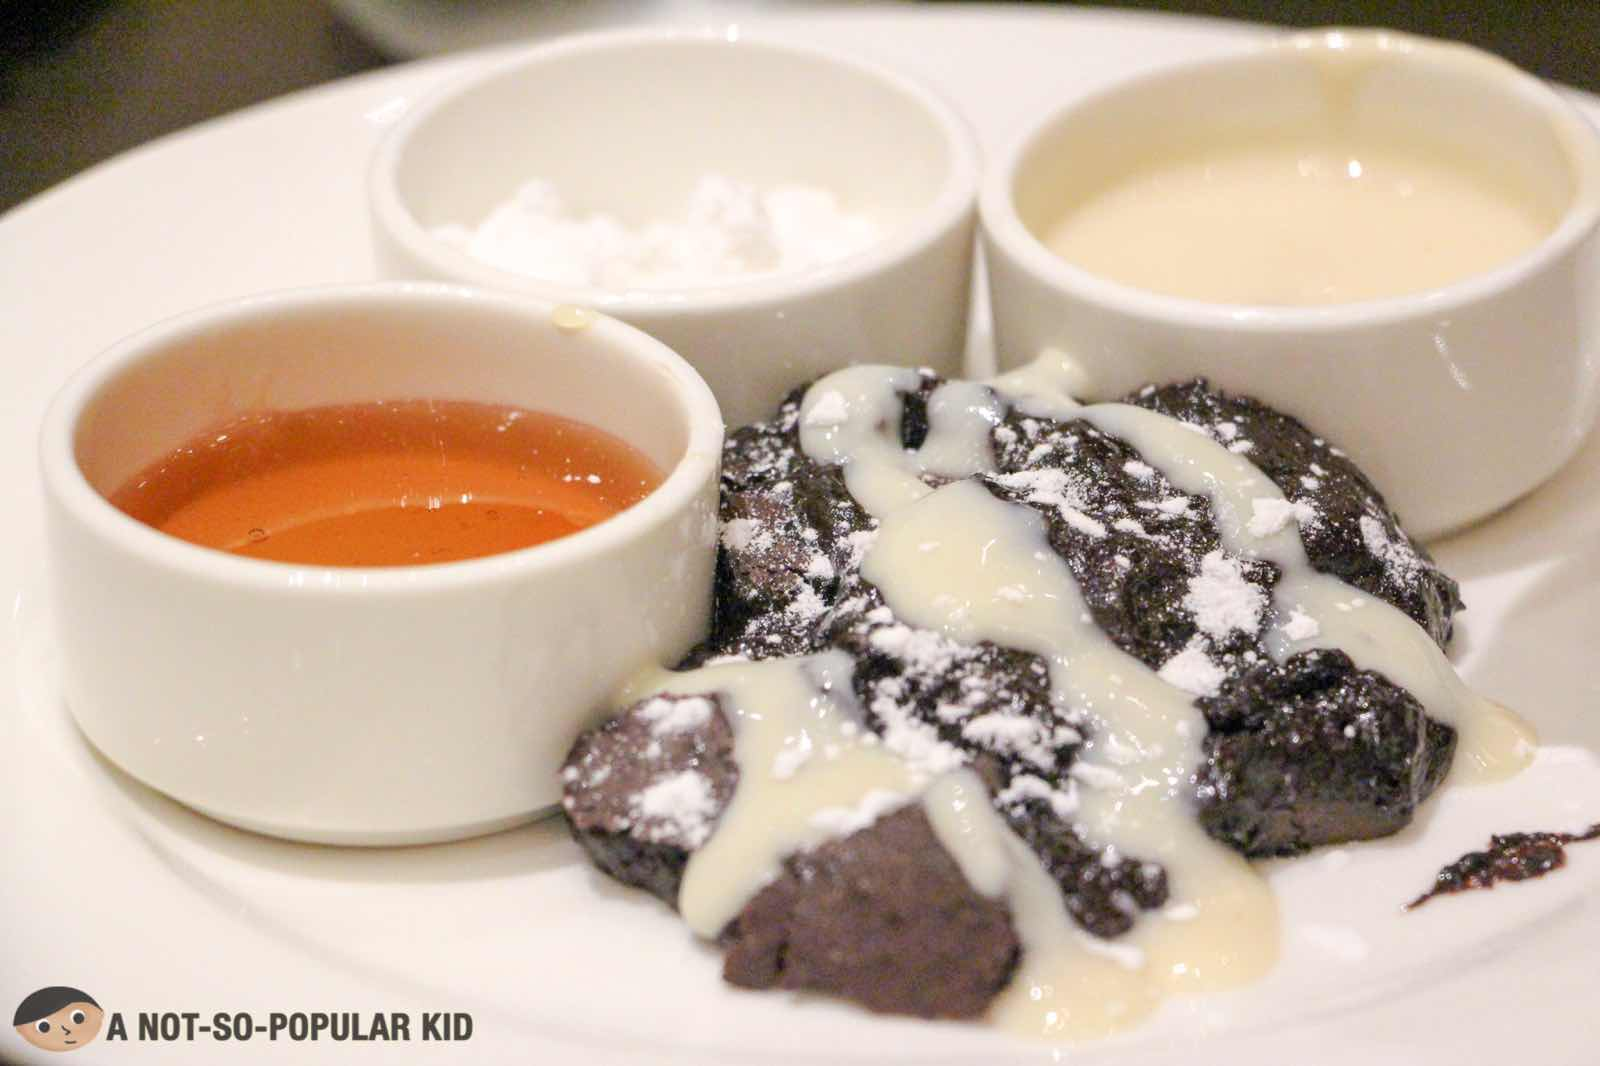 Gooey Lava Cake in S Kitchen, Sheraton Hotel